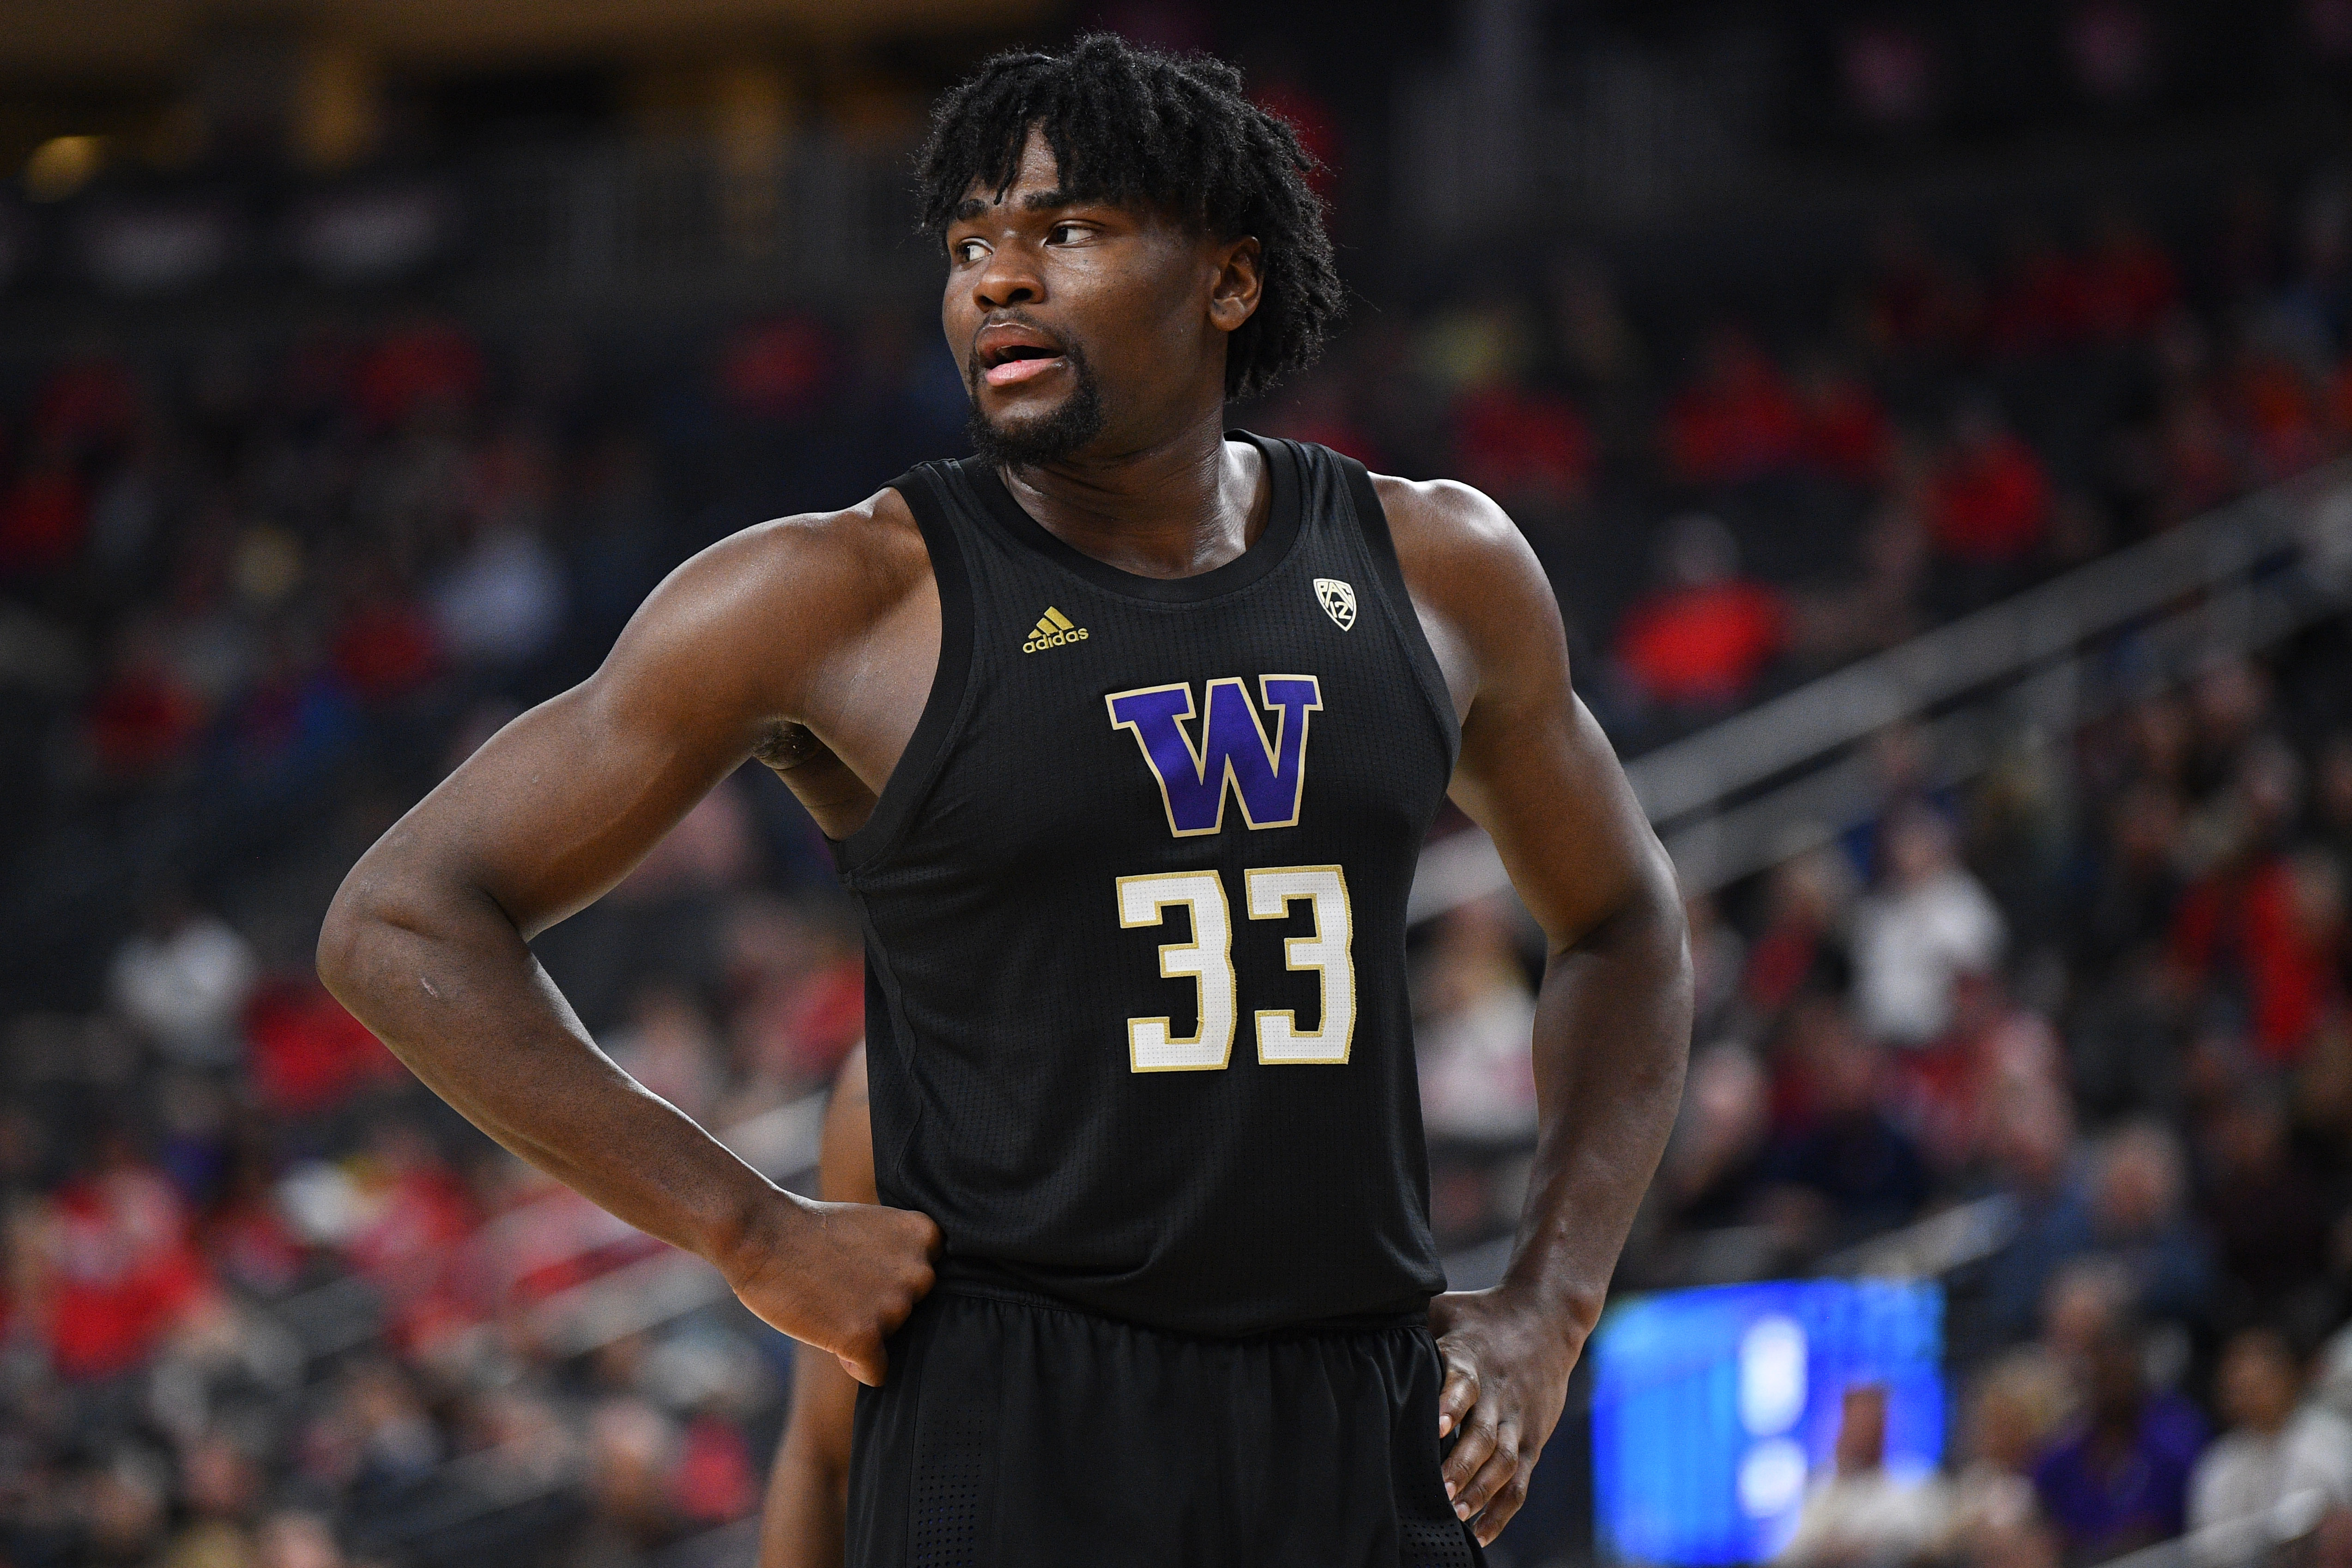 Isaiah Stewart of the Washington Huskies